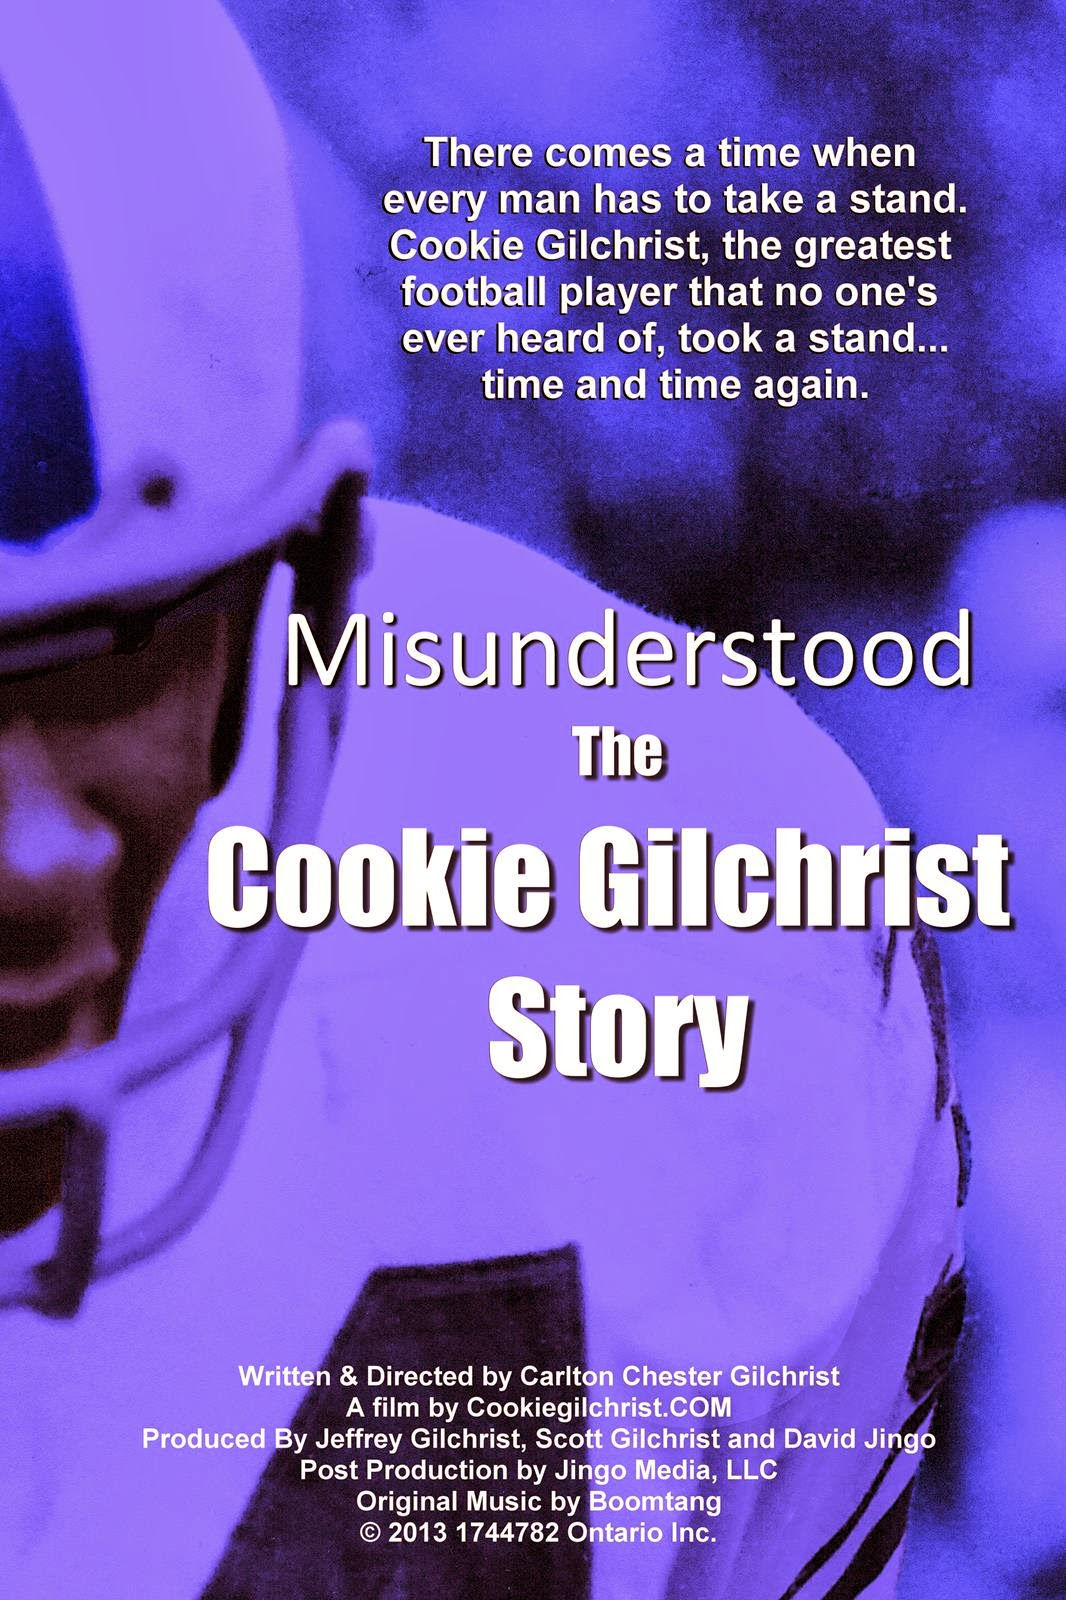 film poster for Misunderstood: The Cookie Gilchrist Story